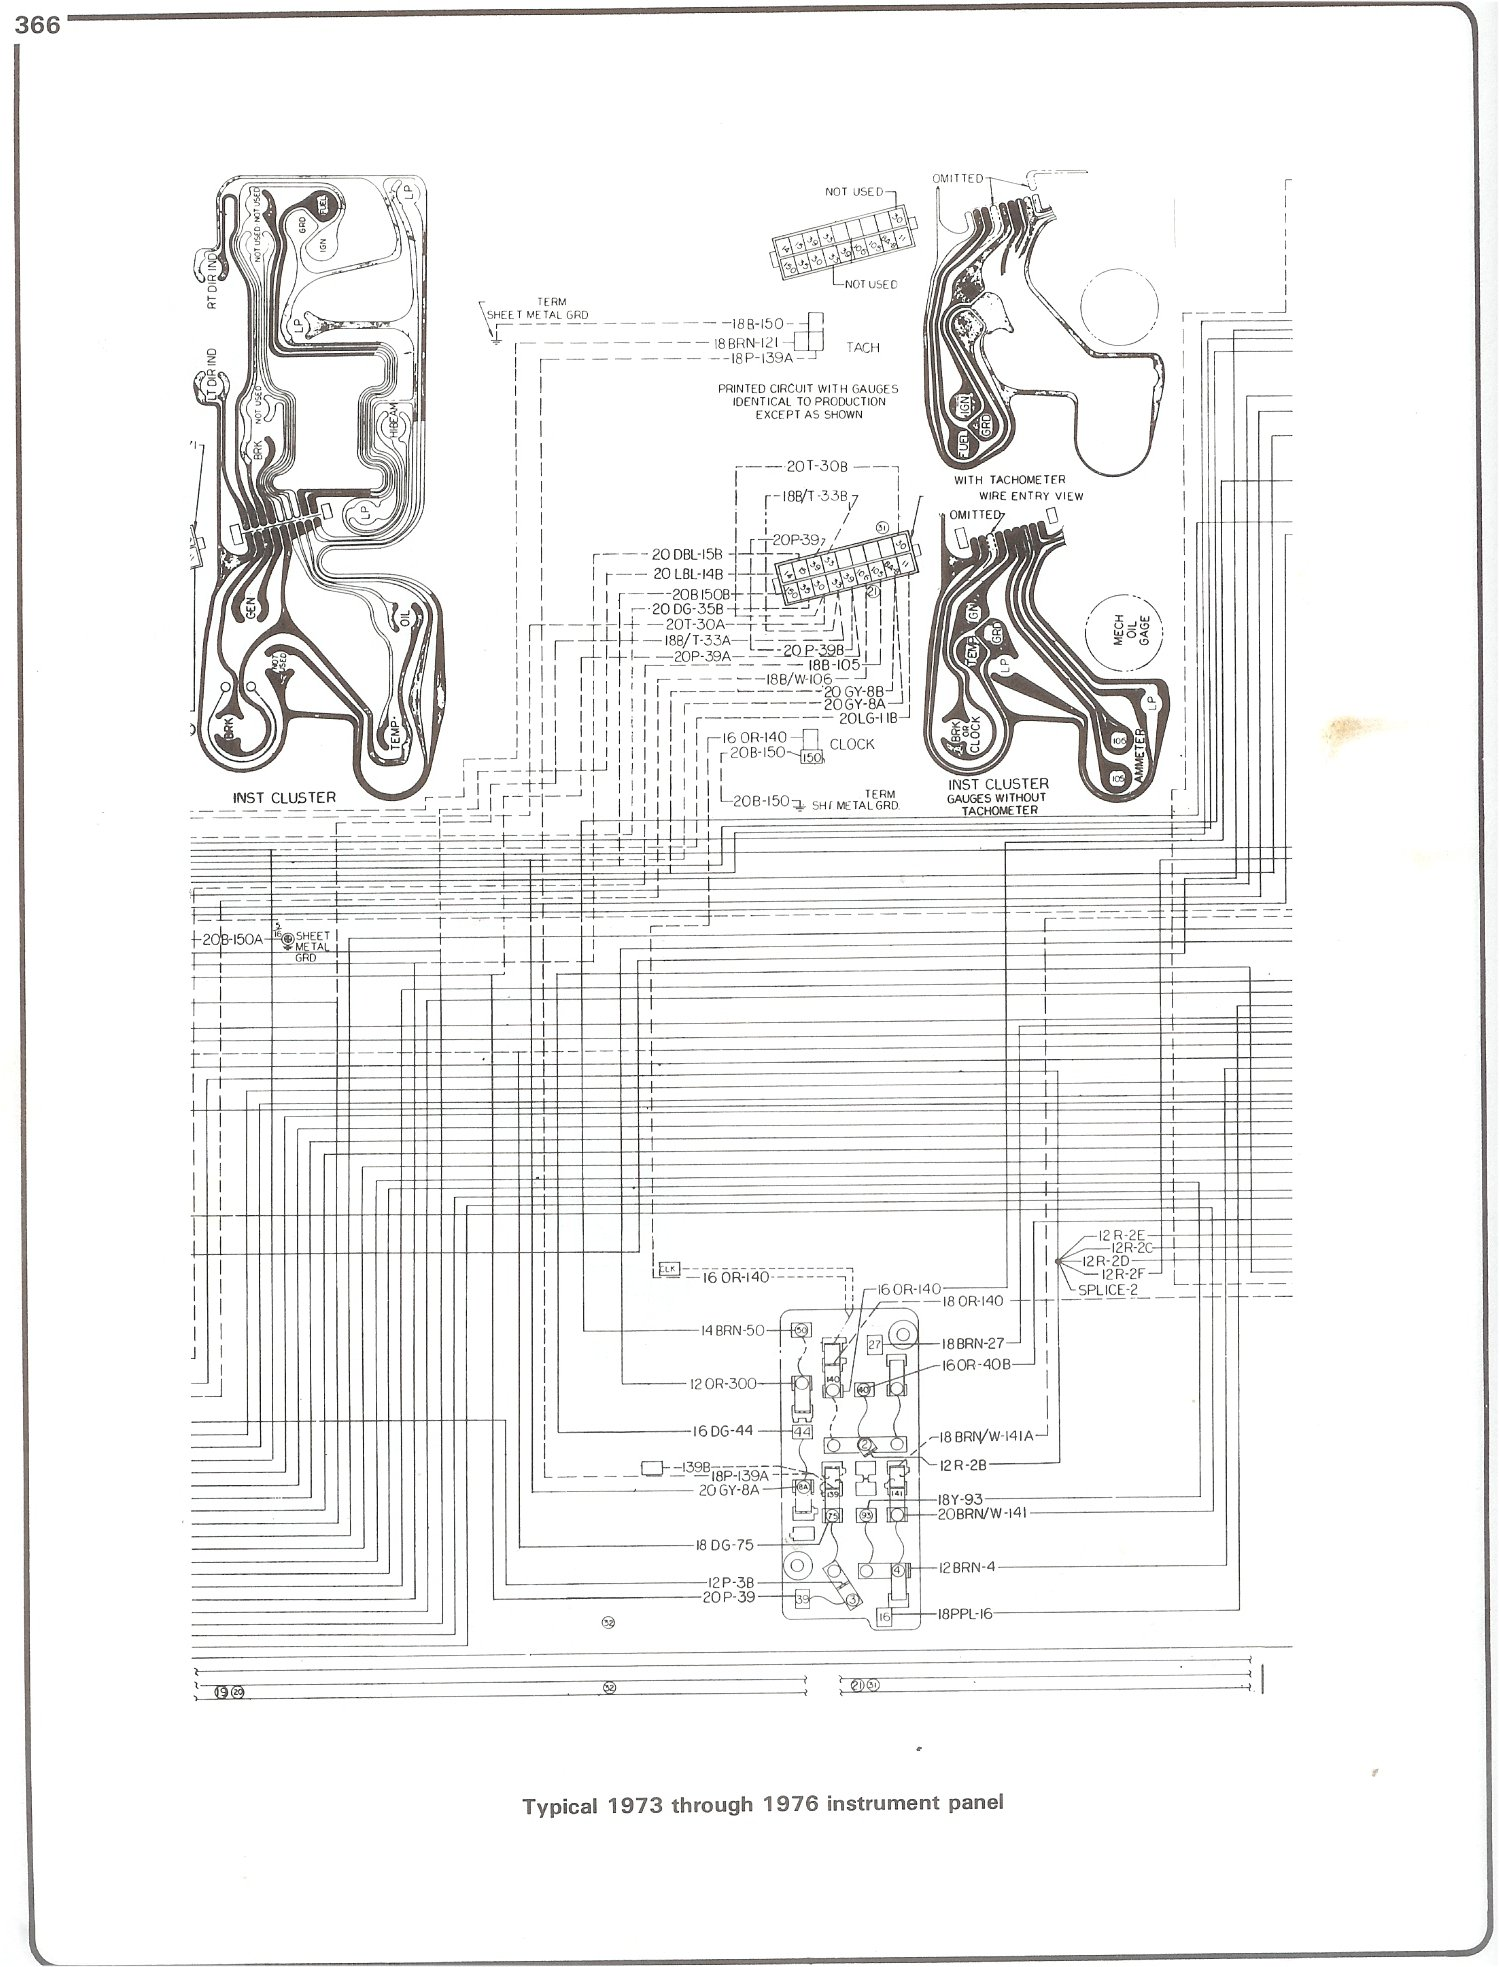 winnebago wiring harness 1985 chevy p30 wiring diagram wiring diagrams and schematics winnebago wiring diagrams and schematics